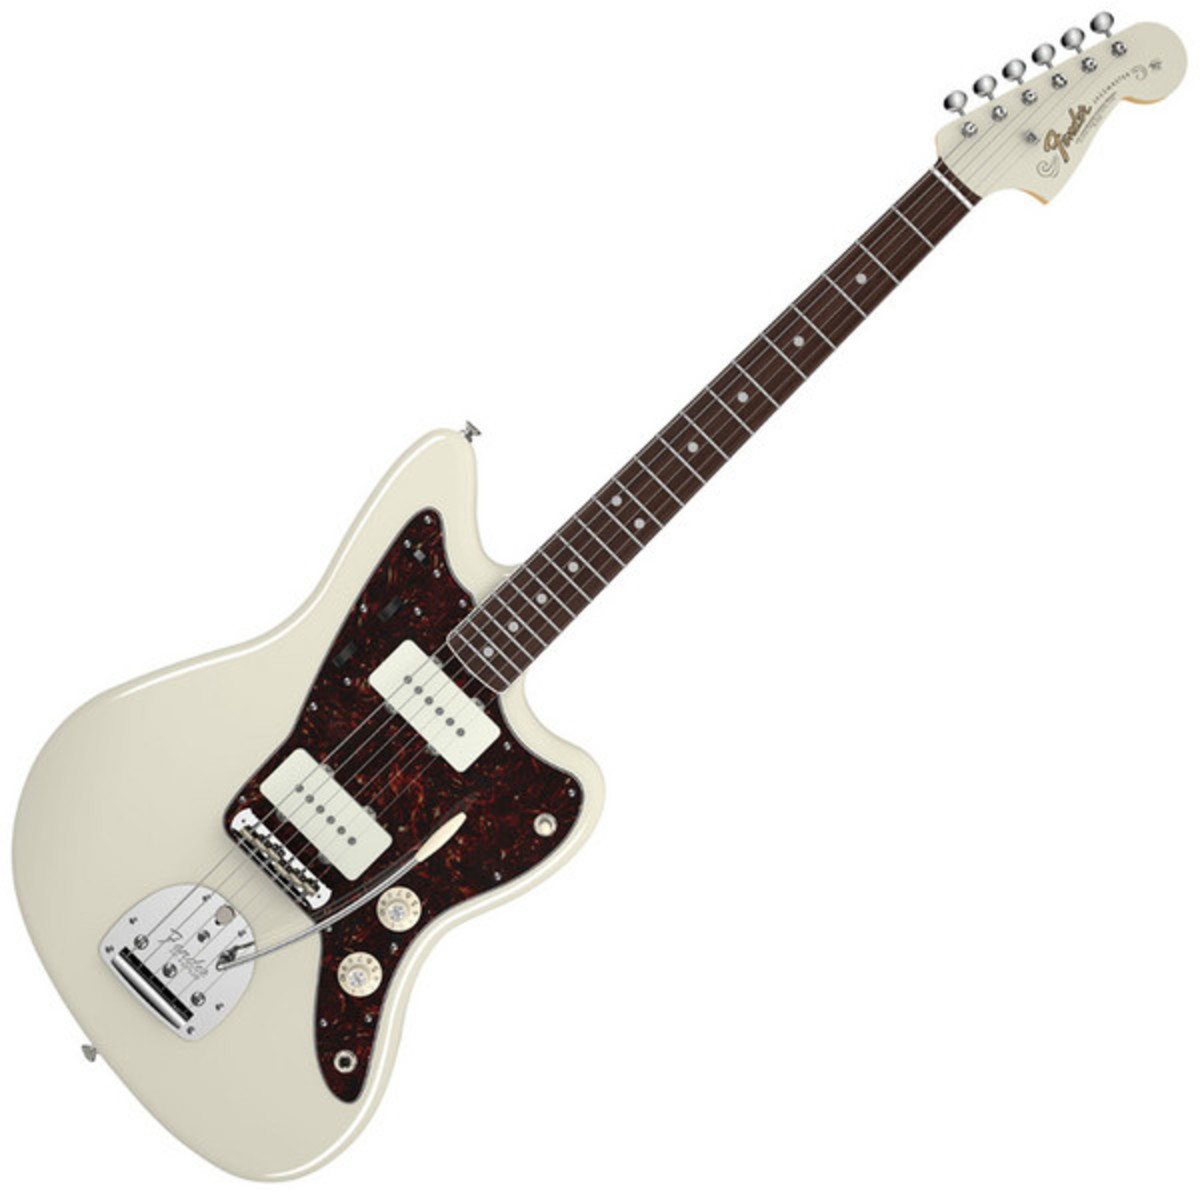 Intended for jazz musicians, the Jazzmaster found more success in the surf rock genre.